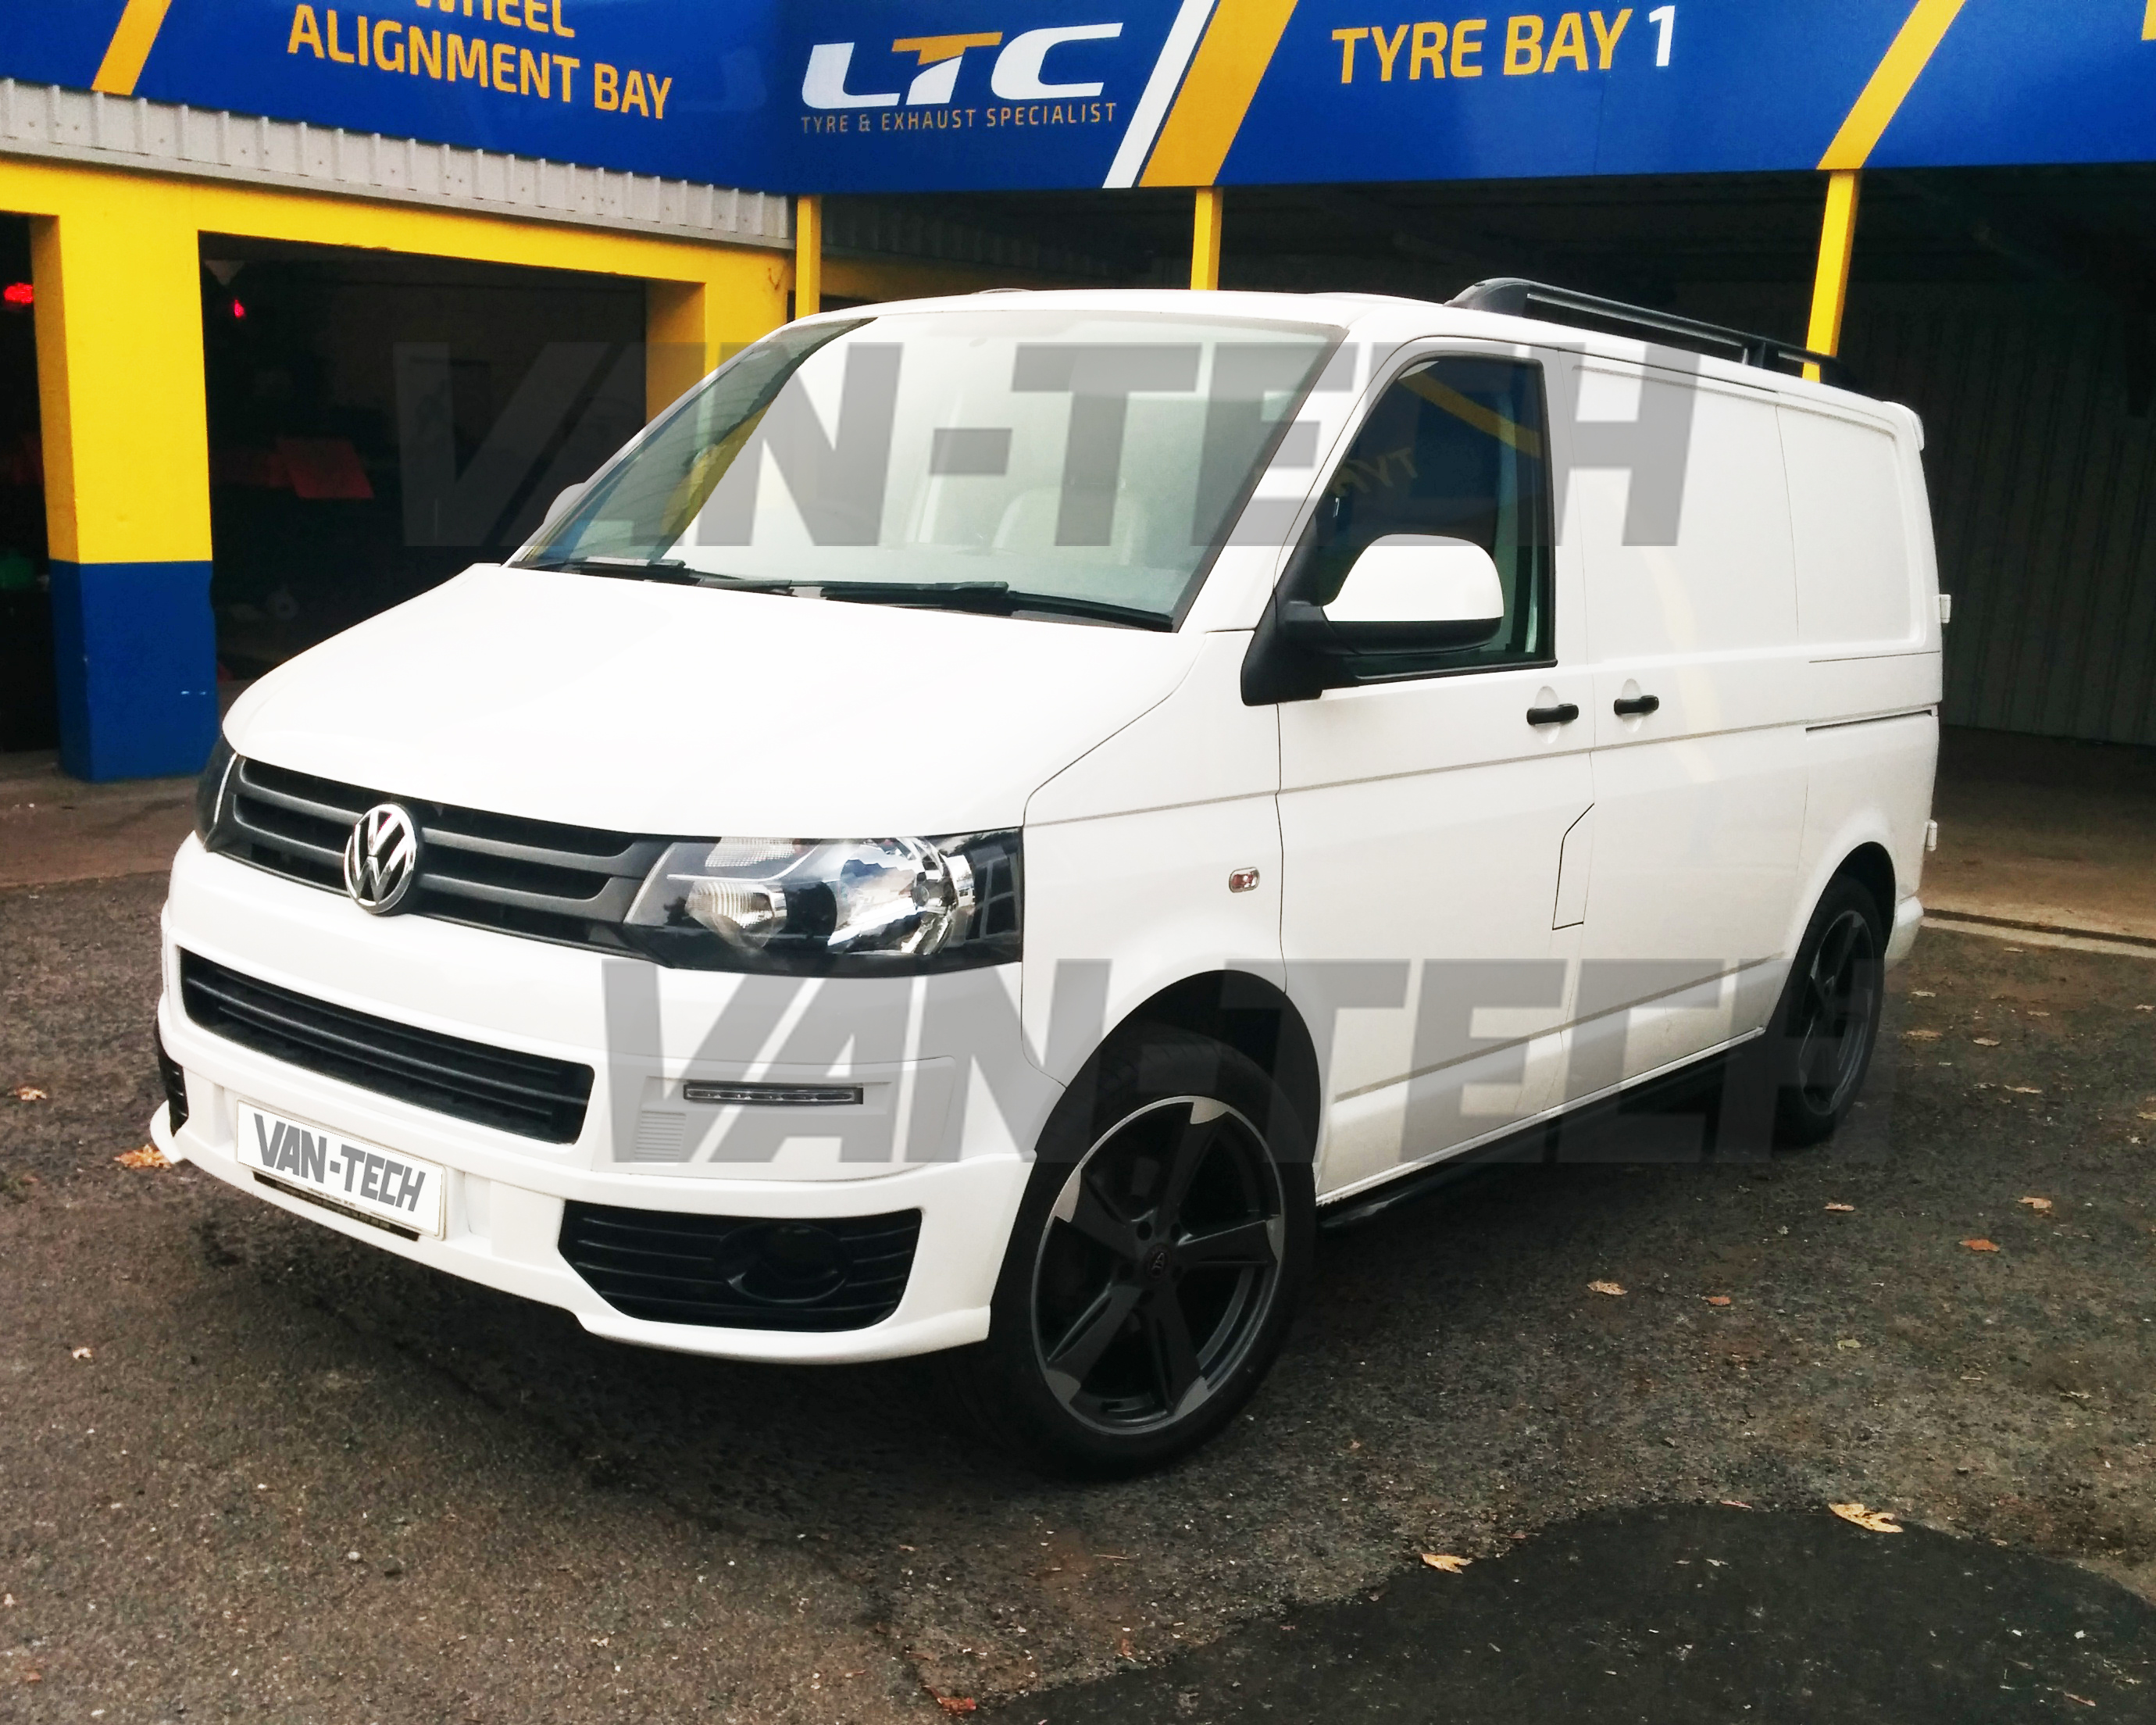 sold volkswagen transporter t5 van white 2013 2 0 swb. Black Bedroom Furniture Sets. Home Design Ideas